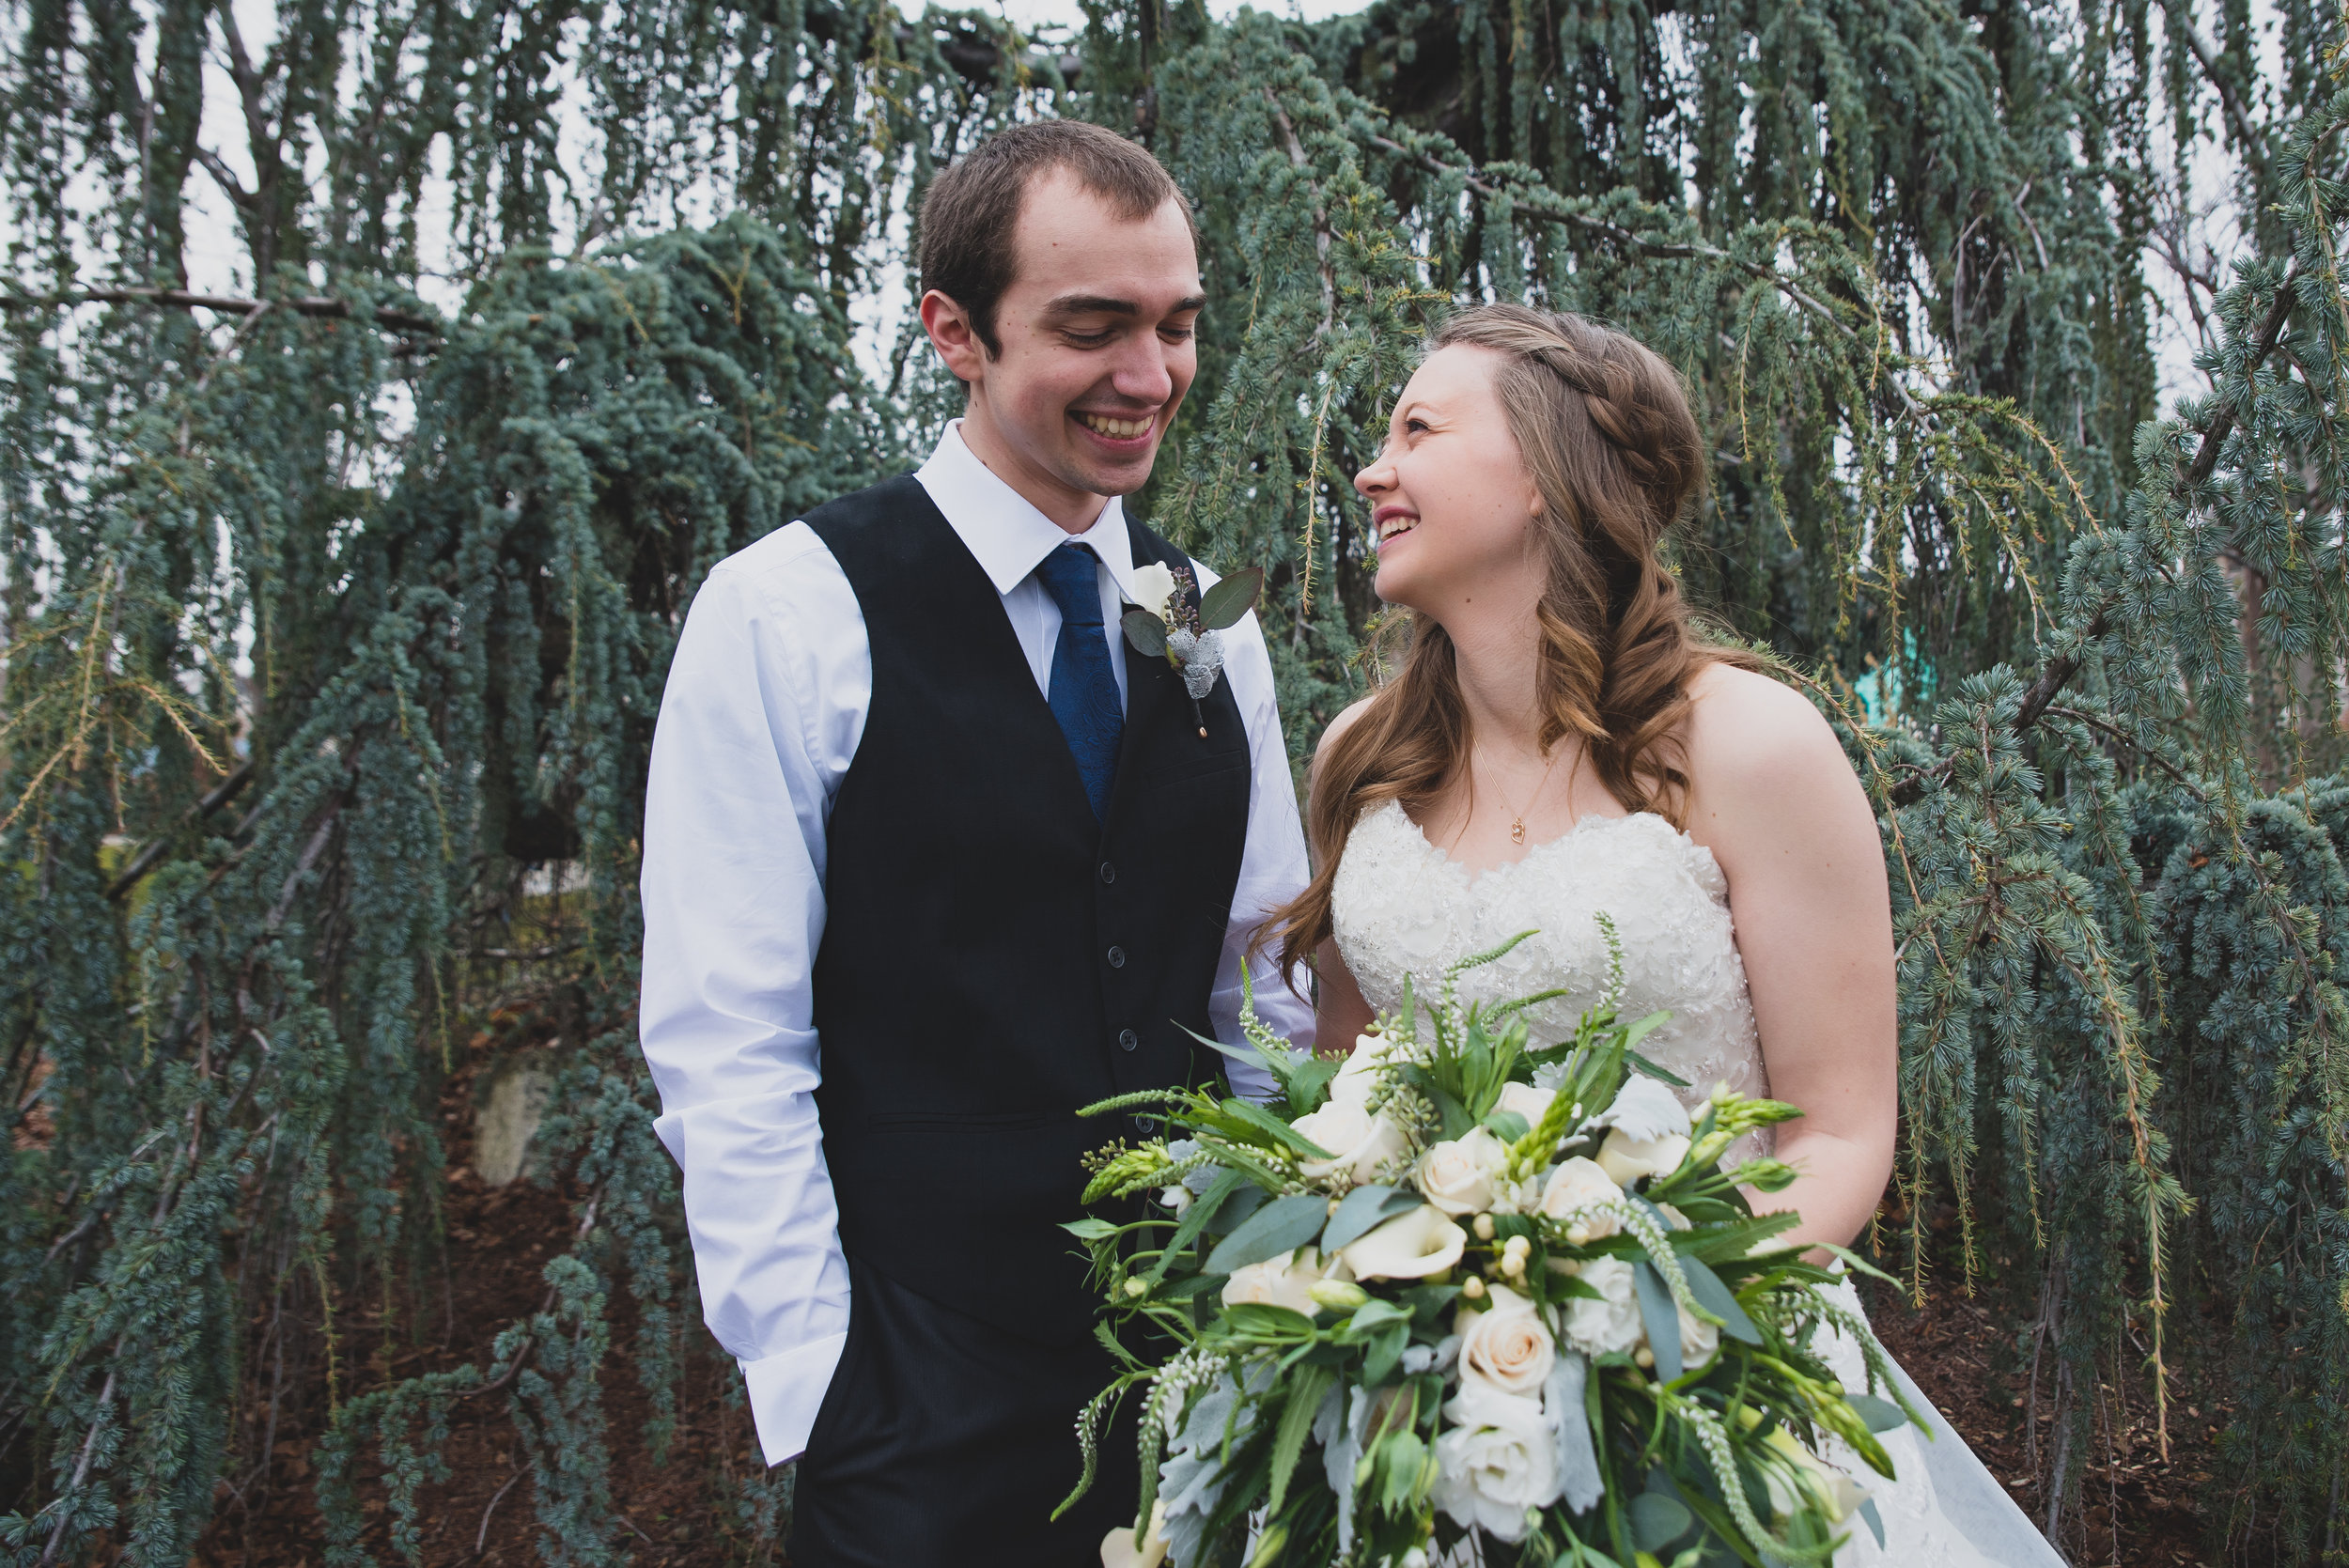 """Rebecca & Coby - """"Jamie was great to work with! She customized her photo package to fit our needs and is very responsive with any and all questions. The photos turned out so beautiful, we are having trouble picking our favorites! Her pricing is incredibly fair and we couldn't be happier!!"""""""